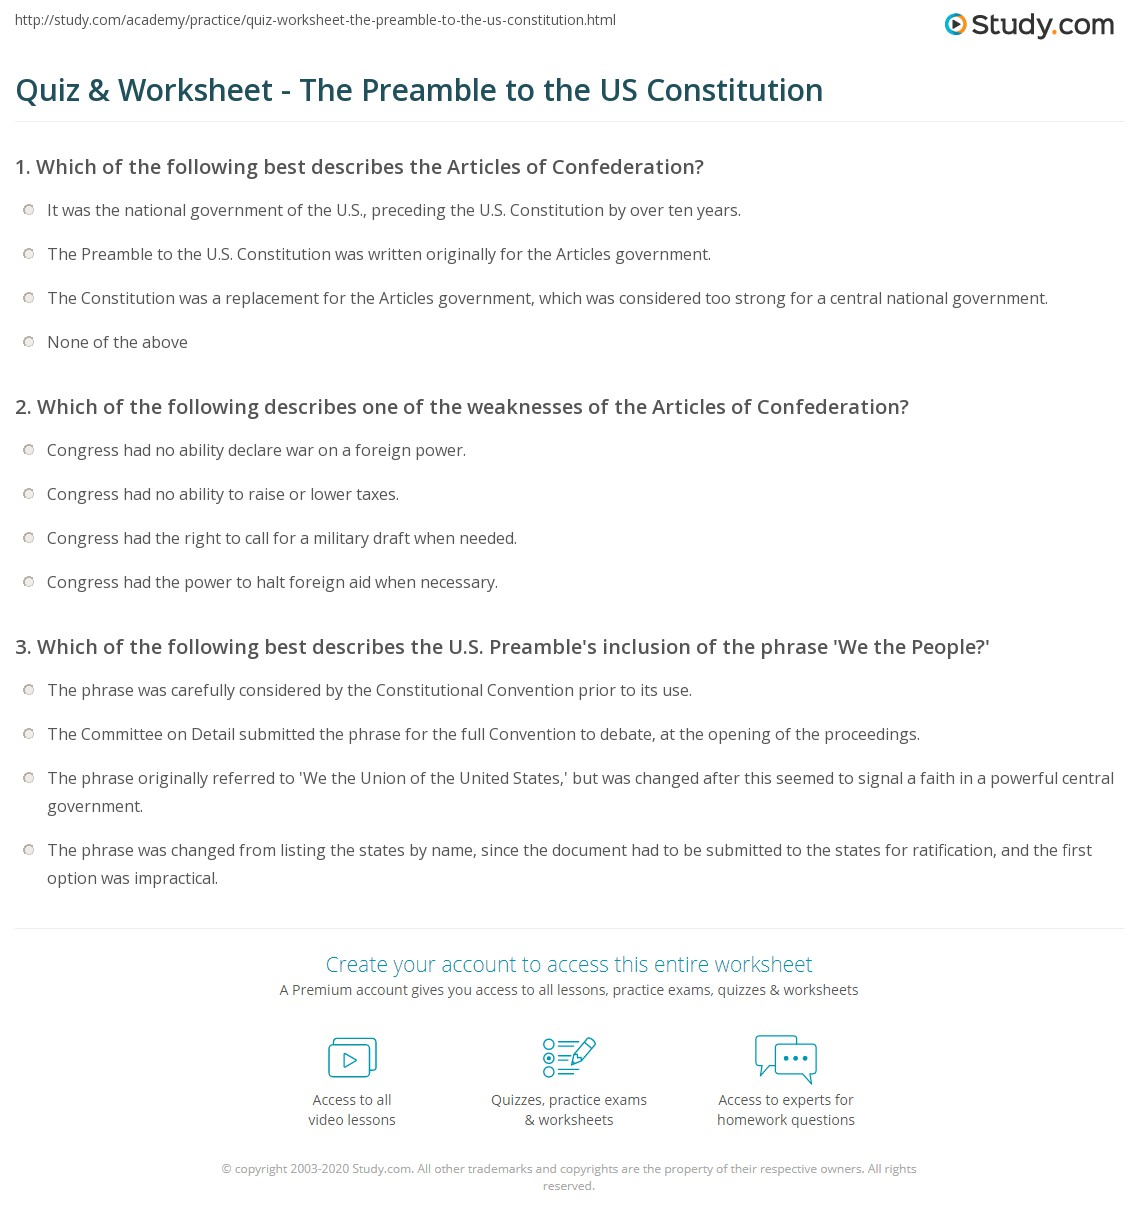 worksheet The Constitution Worksheet Answers the constitution worksheet free worksheets library download and quiz w ksheet pre mble to us c stituti study